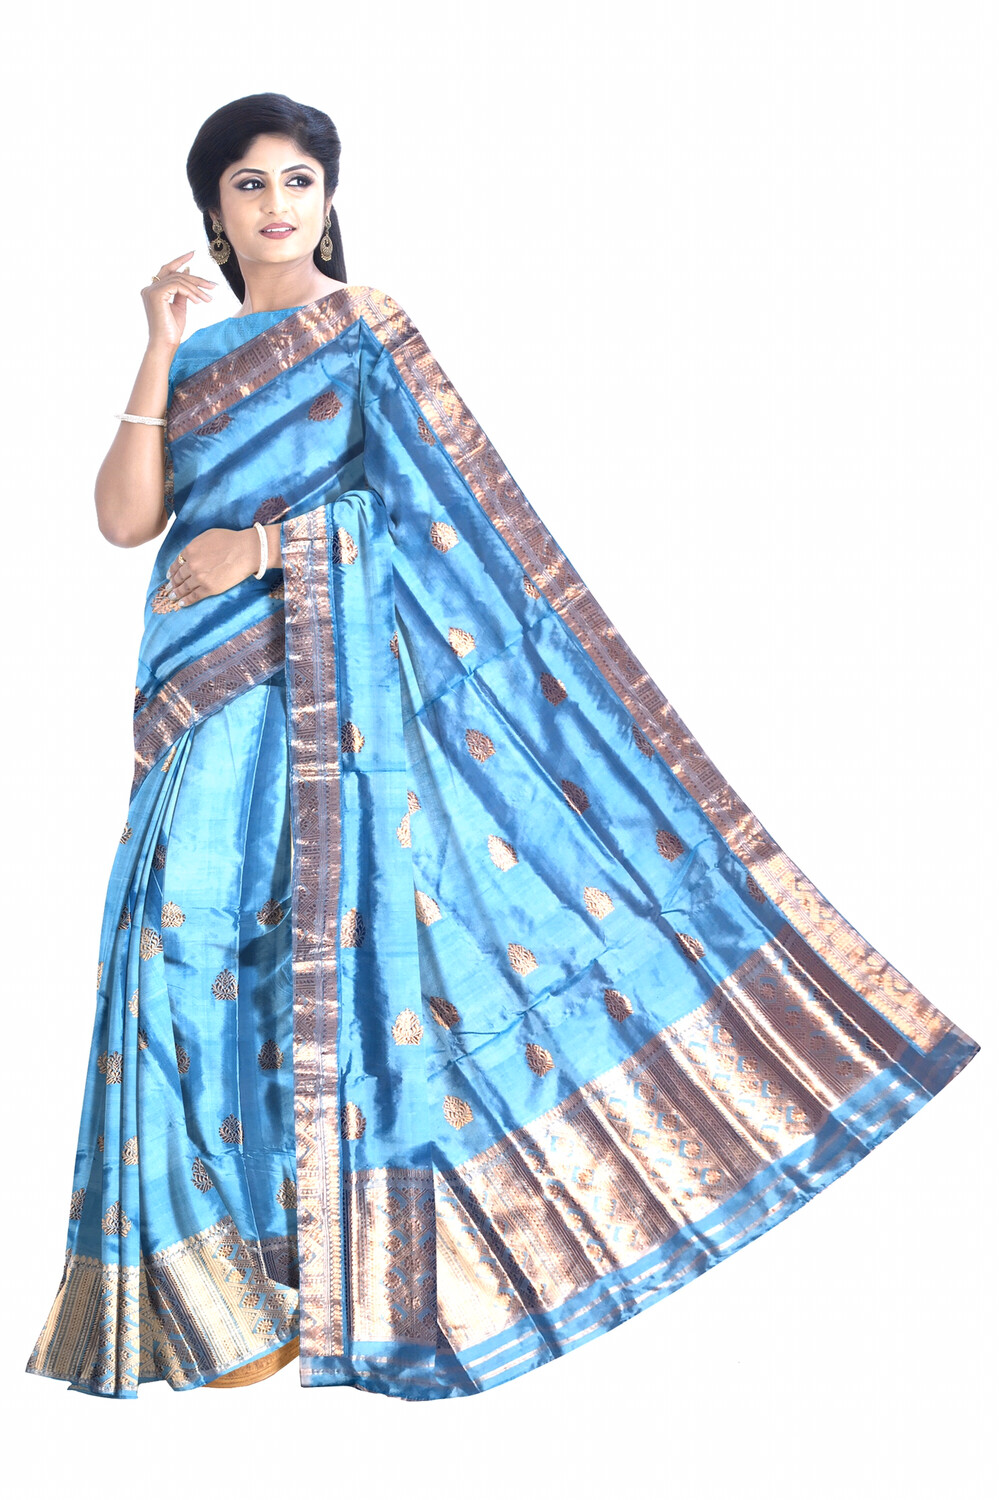 Gorgeous Ready to wear 100% pure Paat (Mulberry Silk) Mekhela sador with heavy  guna work including Blouse piece and side pari